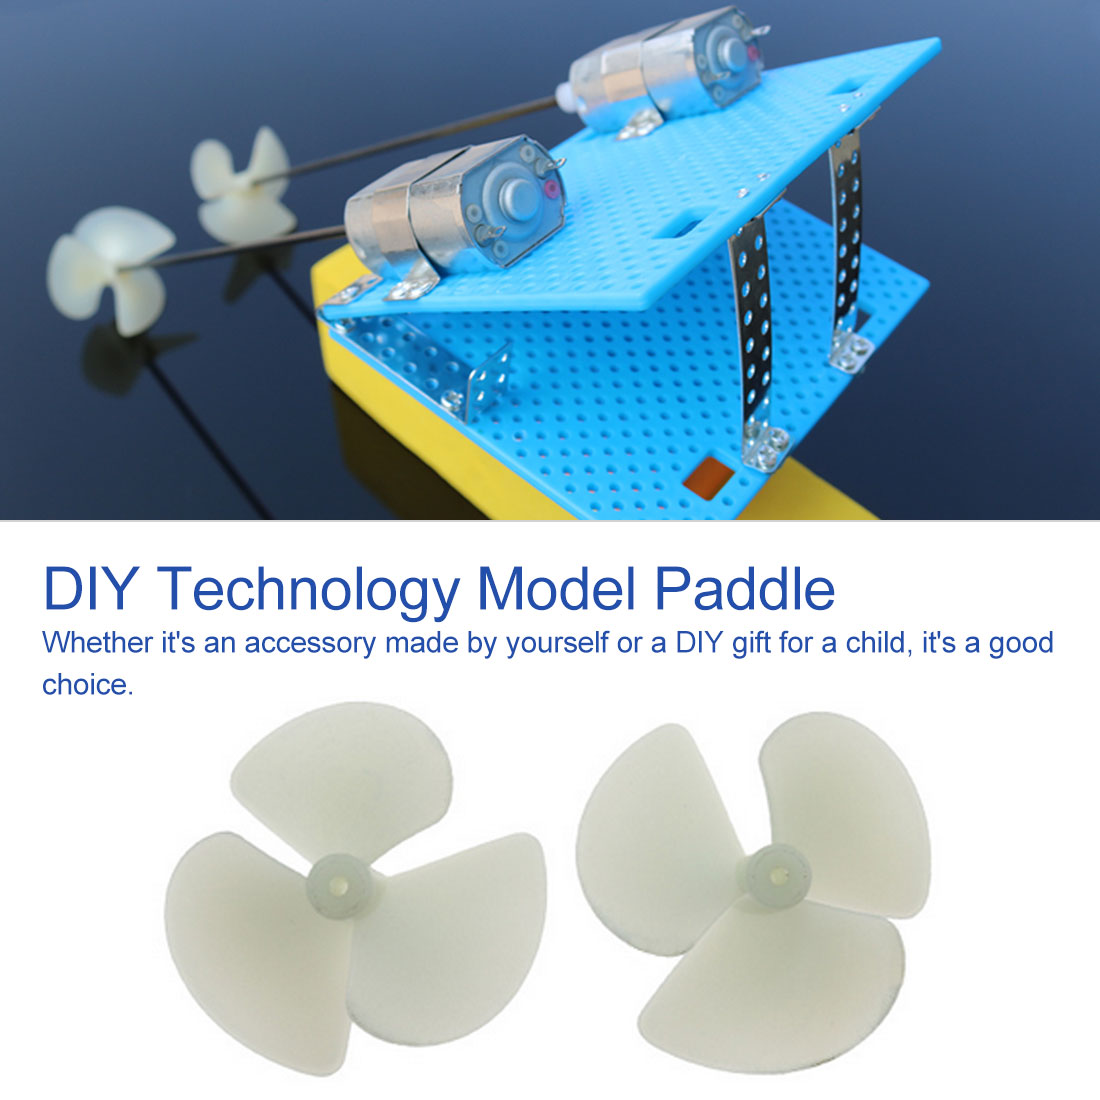 2*36mm Propellers 36/42mm Diameter 3 Blades Three-Leaf Electric Nylon Props/Paddle fr DIY Boats Models 2mm Shafts image